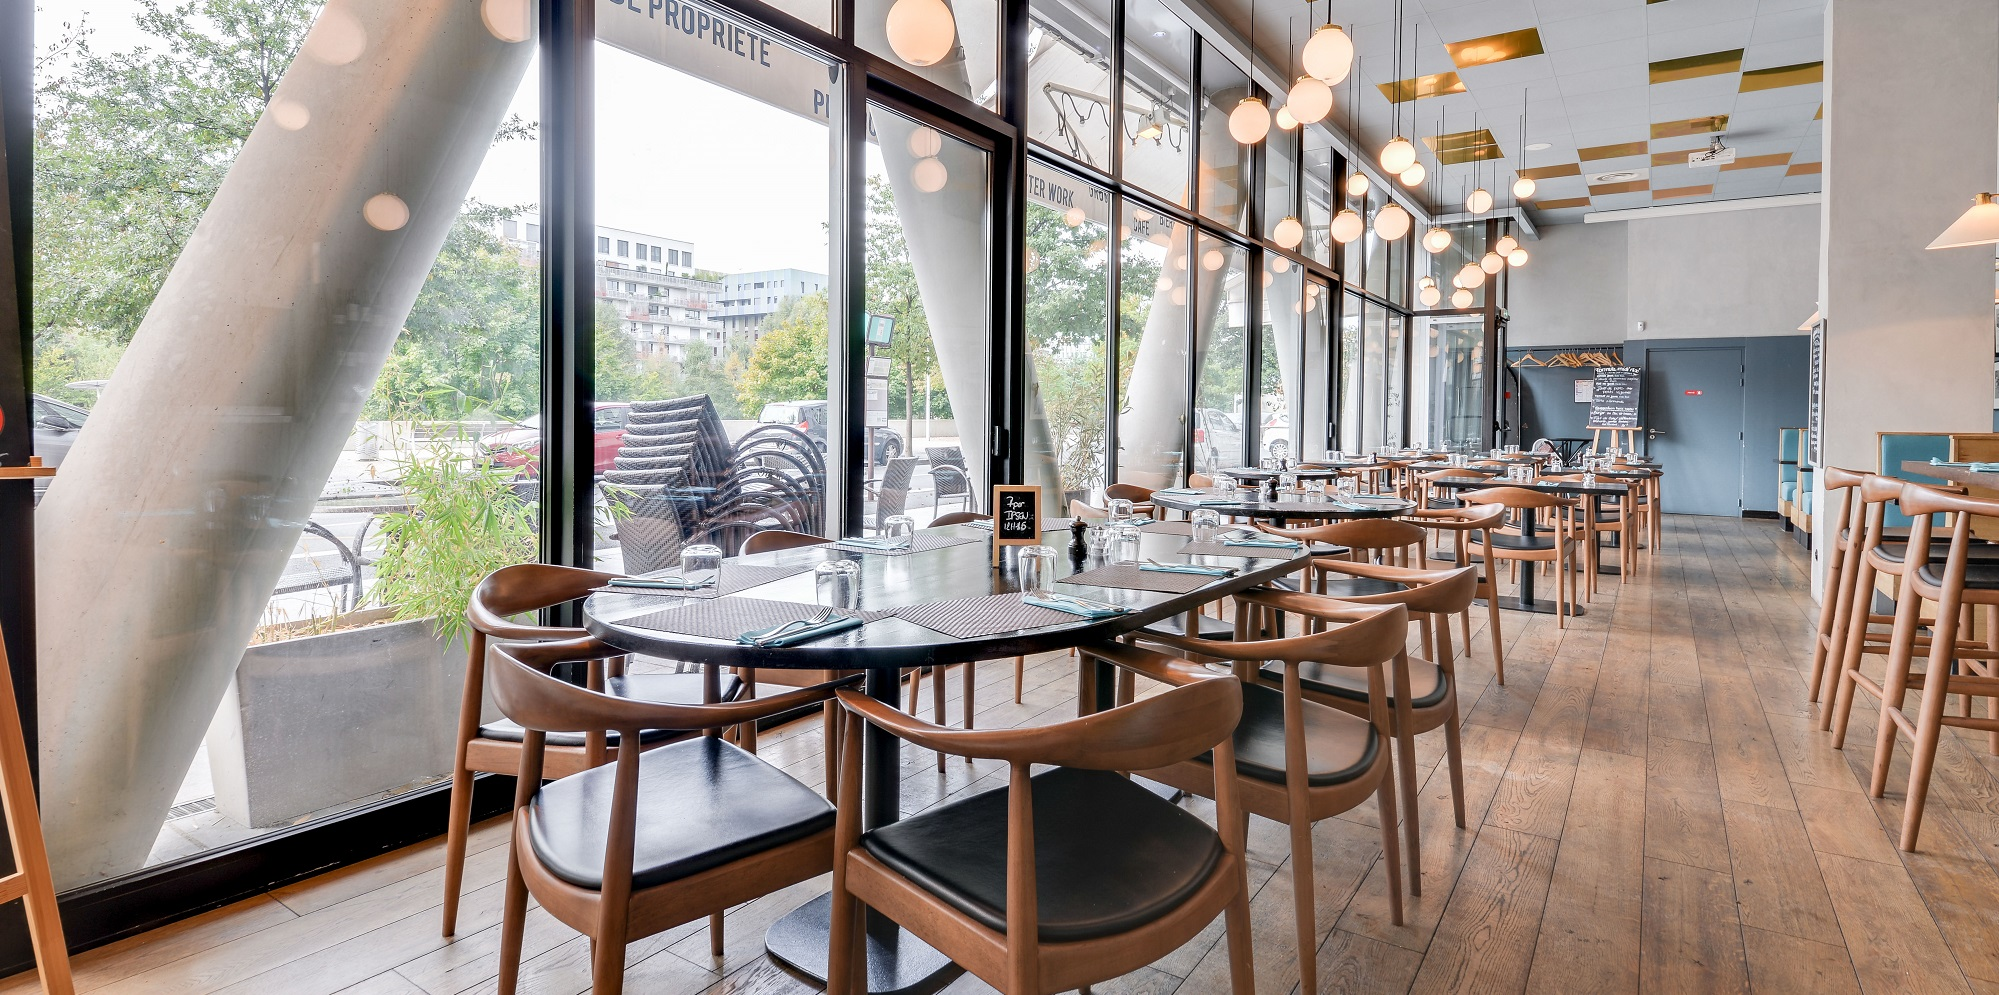 Brunch Café de l'Industrie (92100 Boulogne Billancourt)